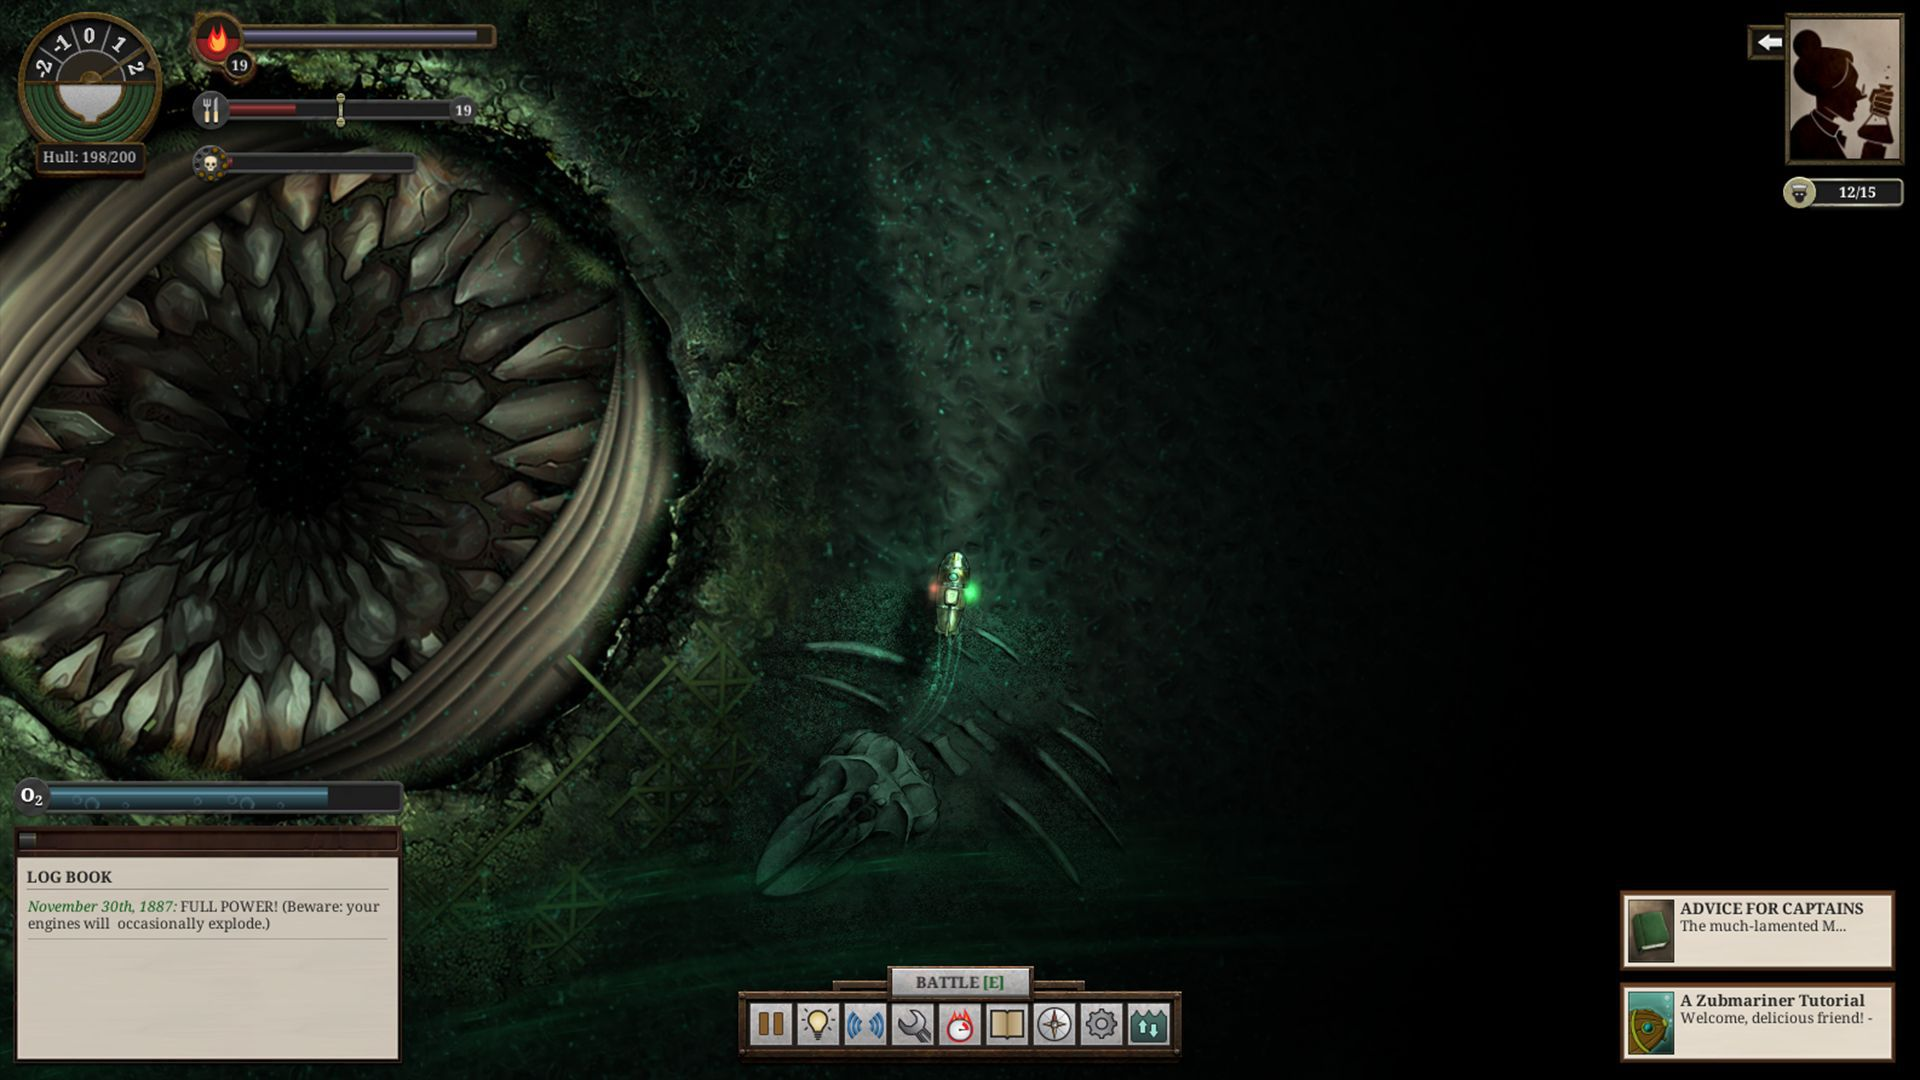 Sunless Sea: Zubmariner (Failbetter Games)